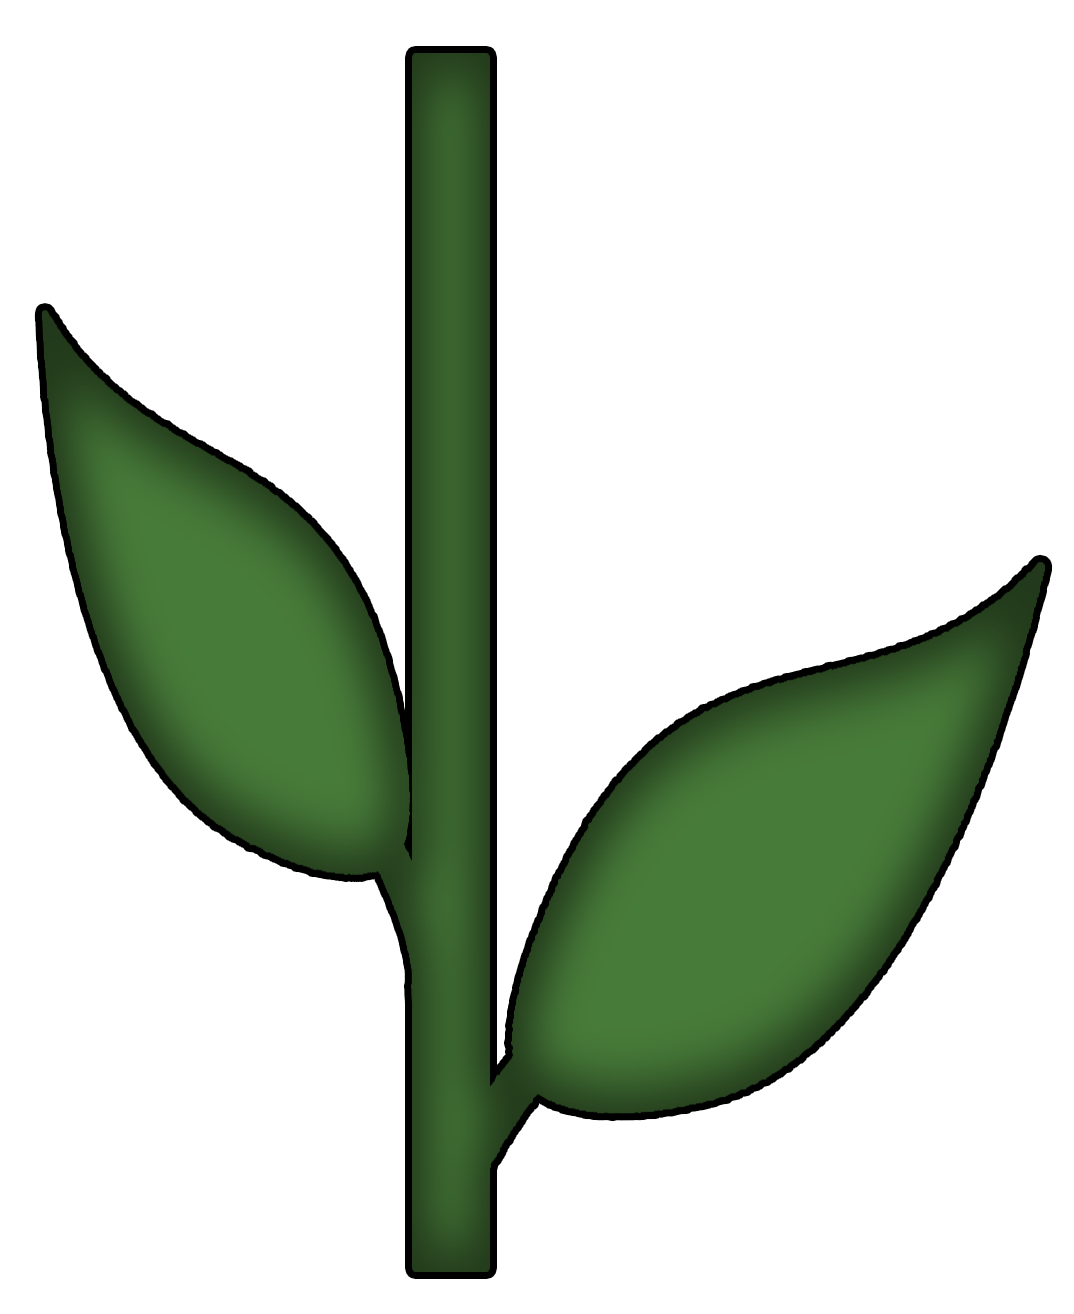 Flower Stem and Leaf Template | preview | quilting | Pinterest ...